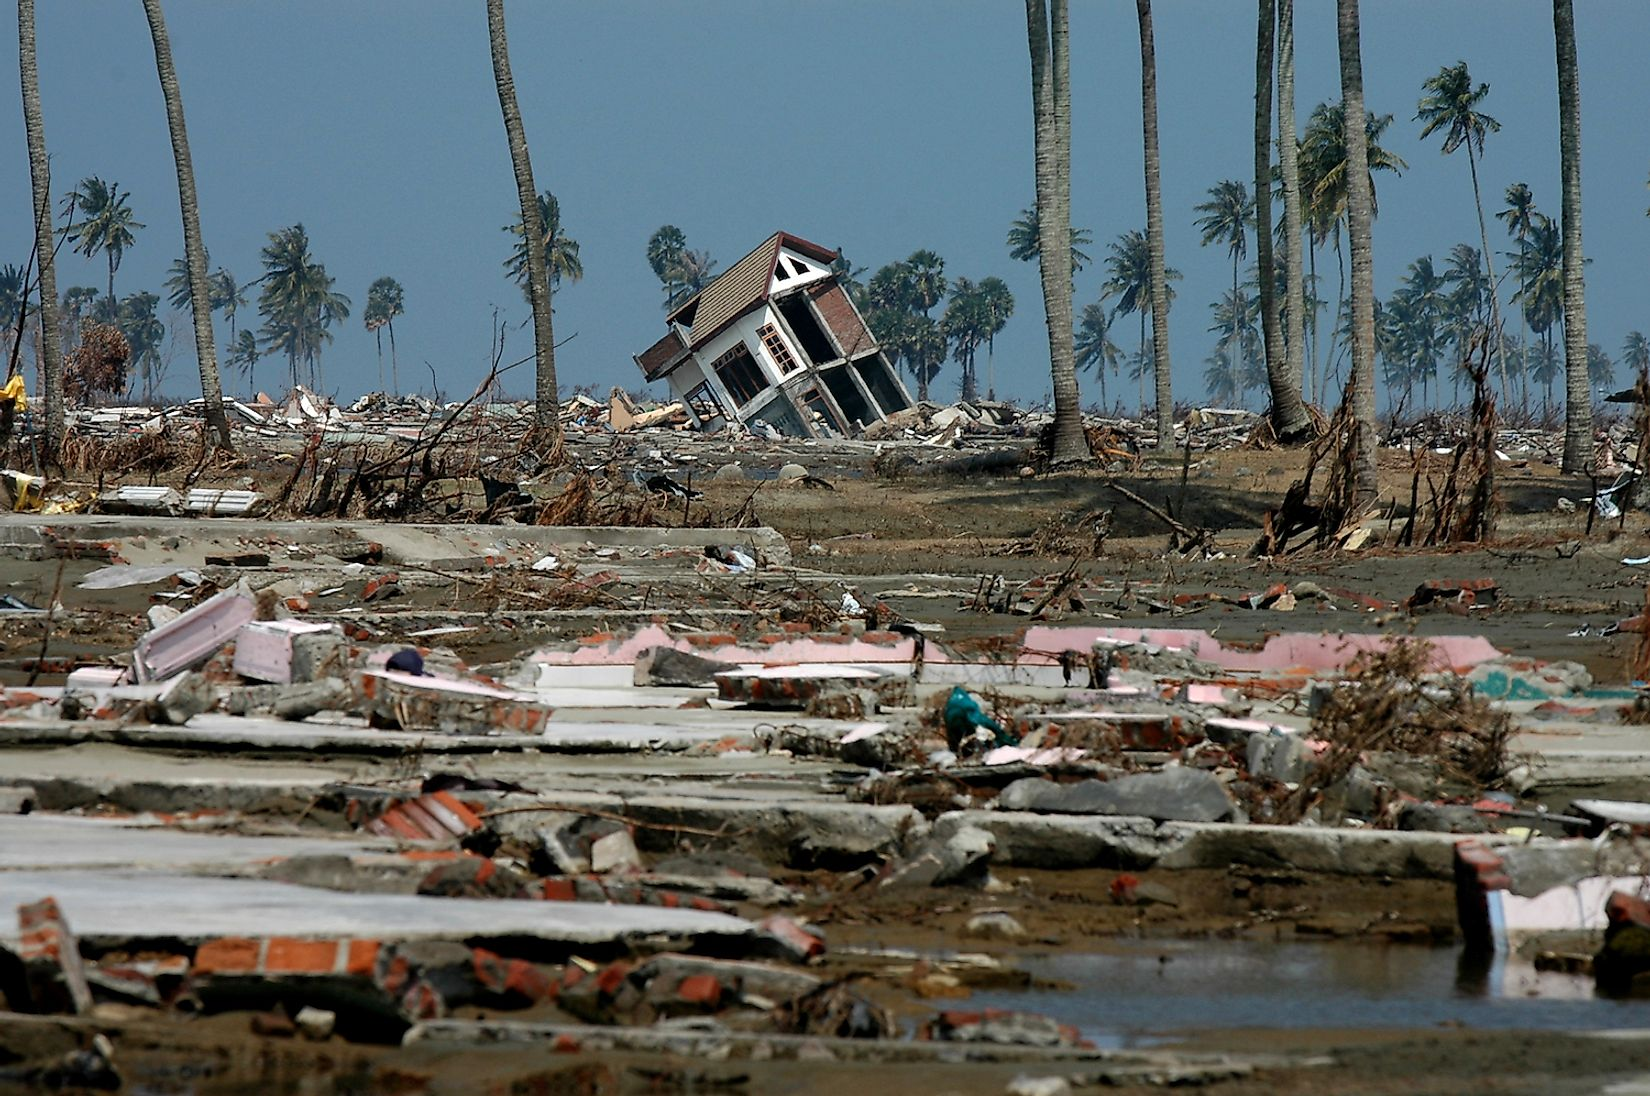 A scene from Banda Aceh, Aceh, Indonesia after the 2004 Indian Ocean earthquake and tsunami. Image credit: Frans Delian/Shutterstock.com